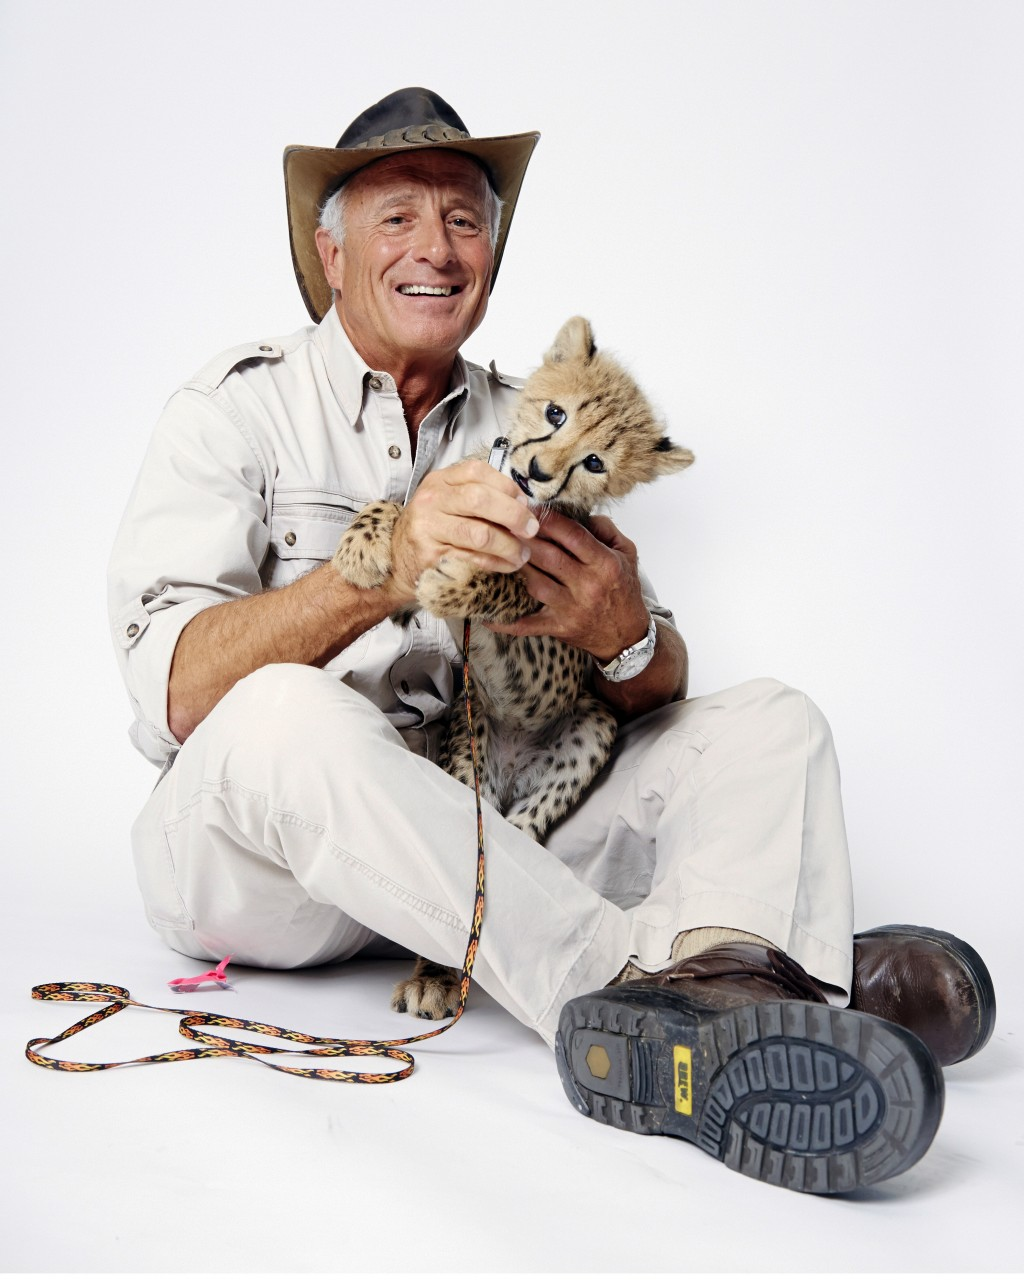 FILE - Wildlife advocate Jack Hanna poses for a portrait with a cheetah cub in New York on Oct. 12, 2015. The family of celebrity zookeeper and TV sho...